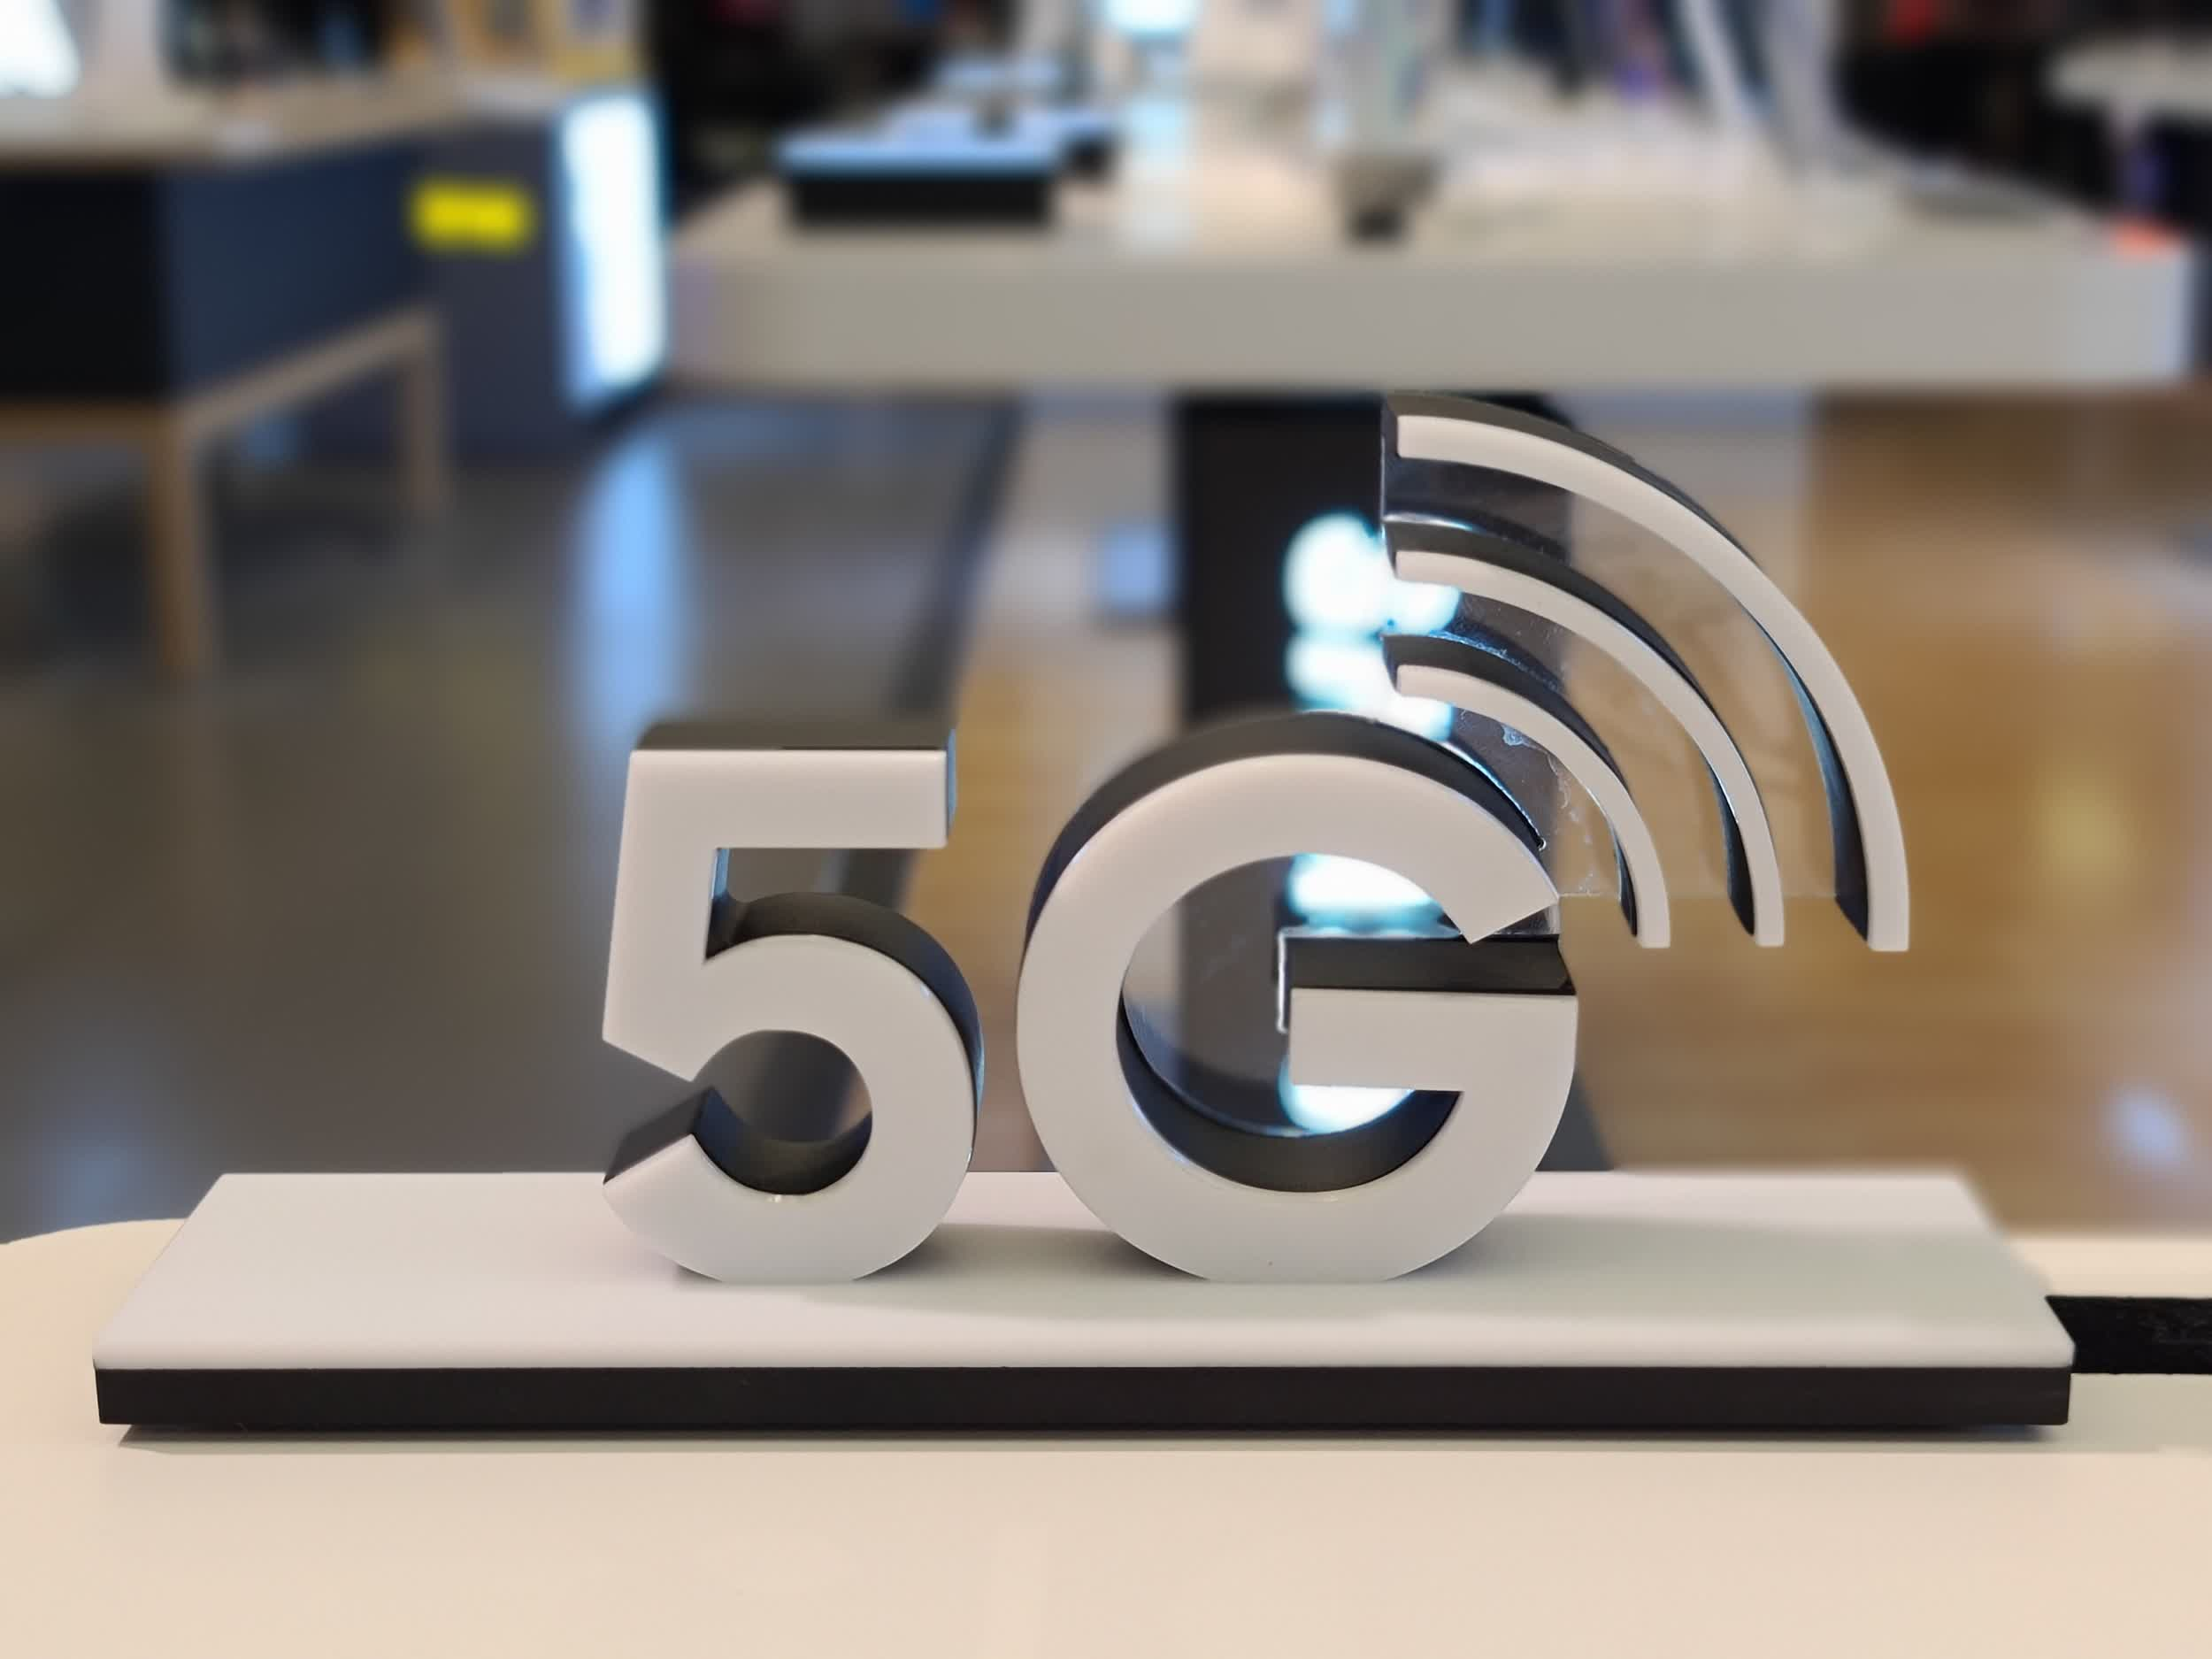 Verizon outspent every other carrier combined in latest FCC 5G spectrum auction